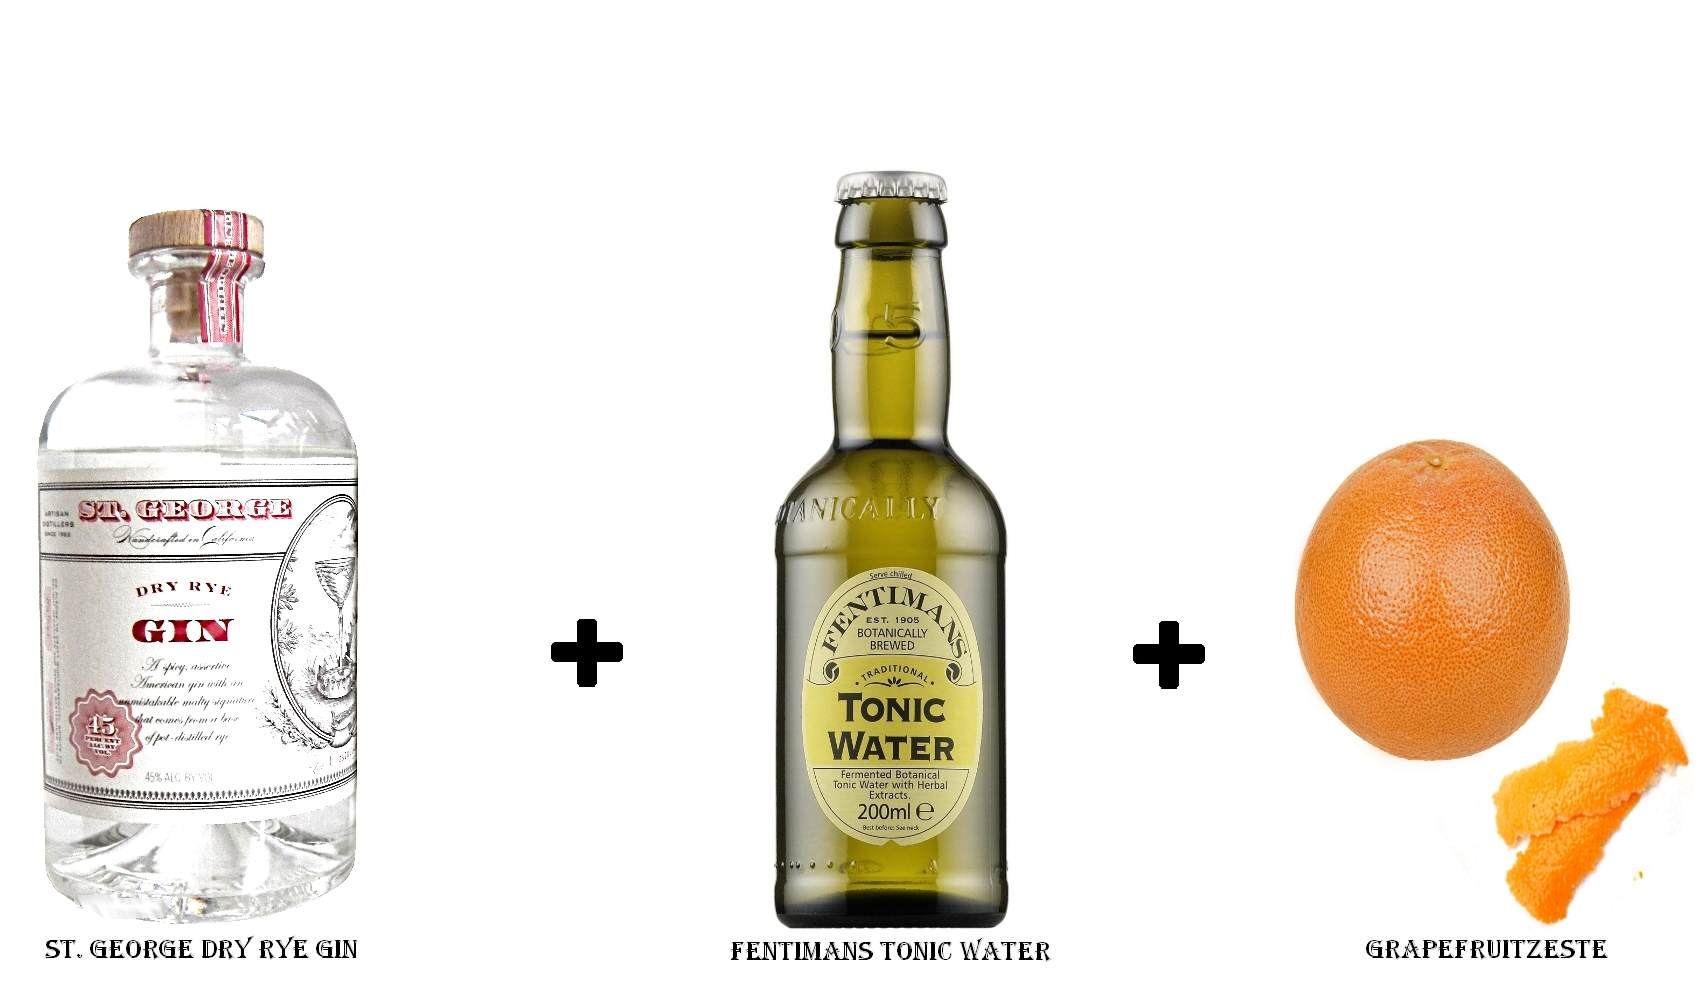 St. George Dry Rye Gin + Fentimans Tonic Water + Grapefruitzeste